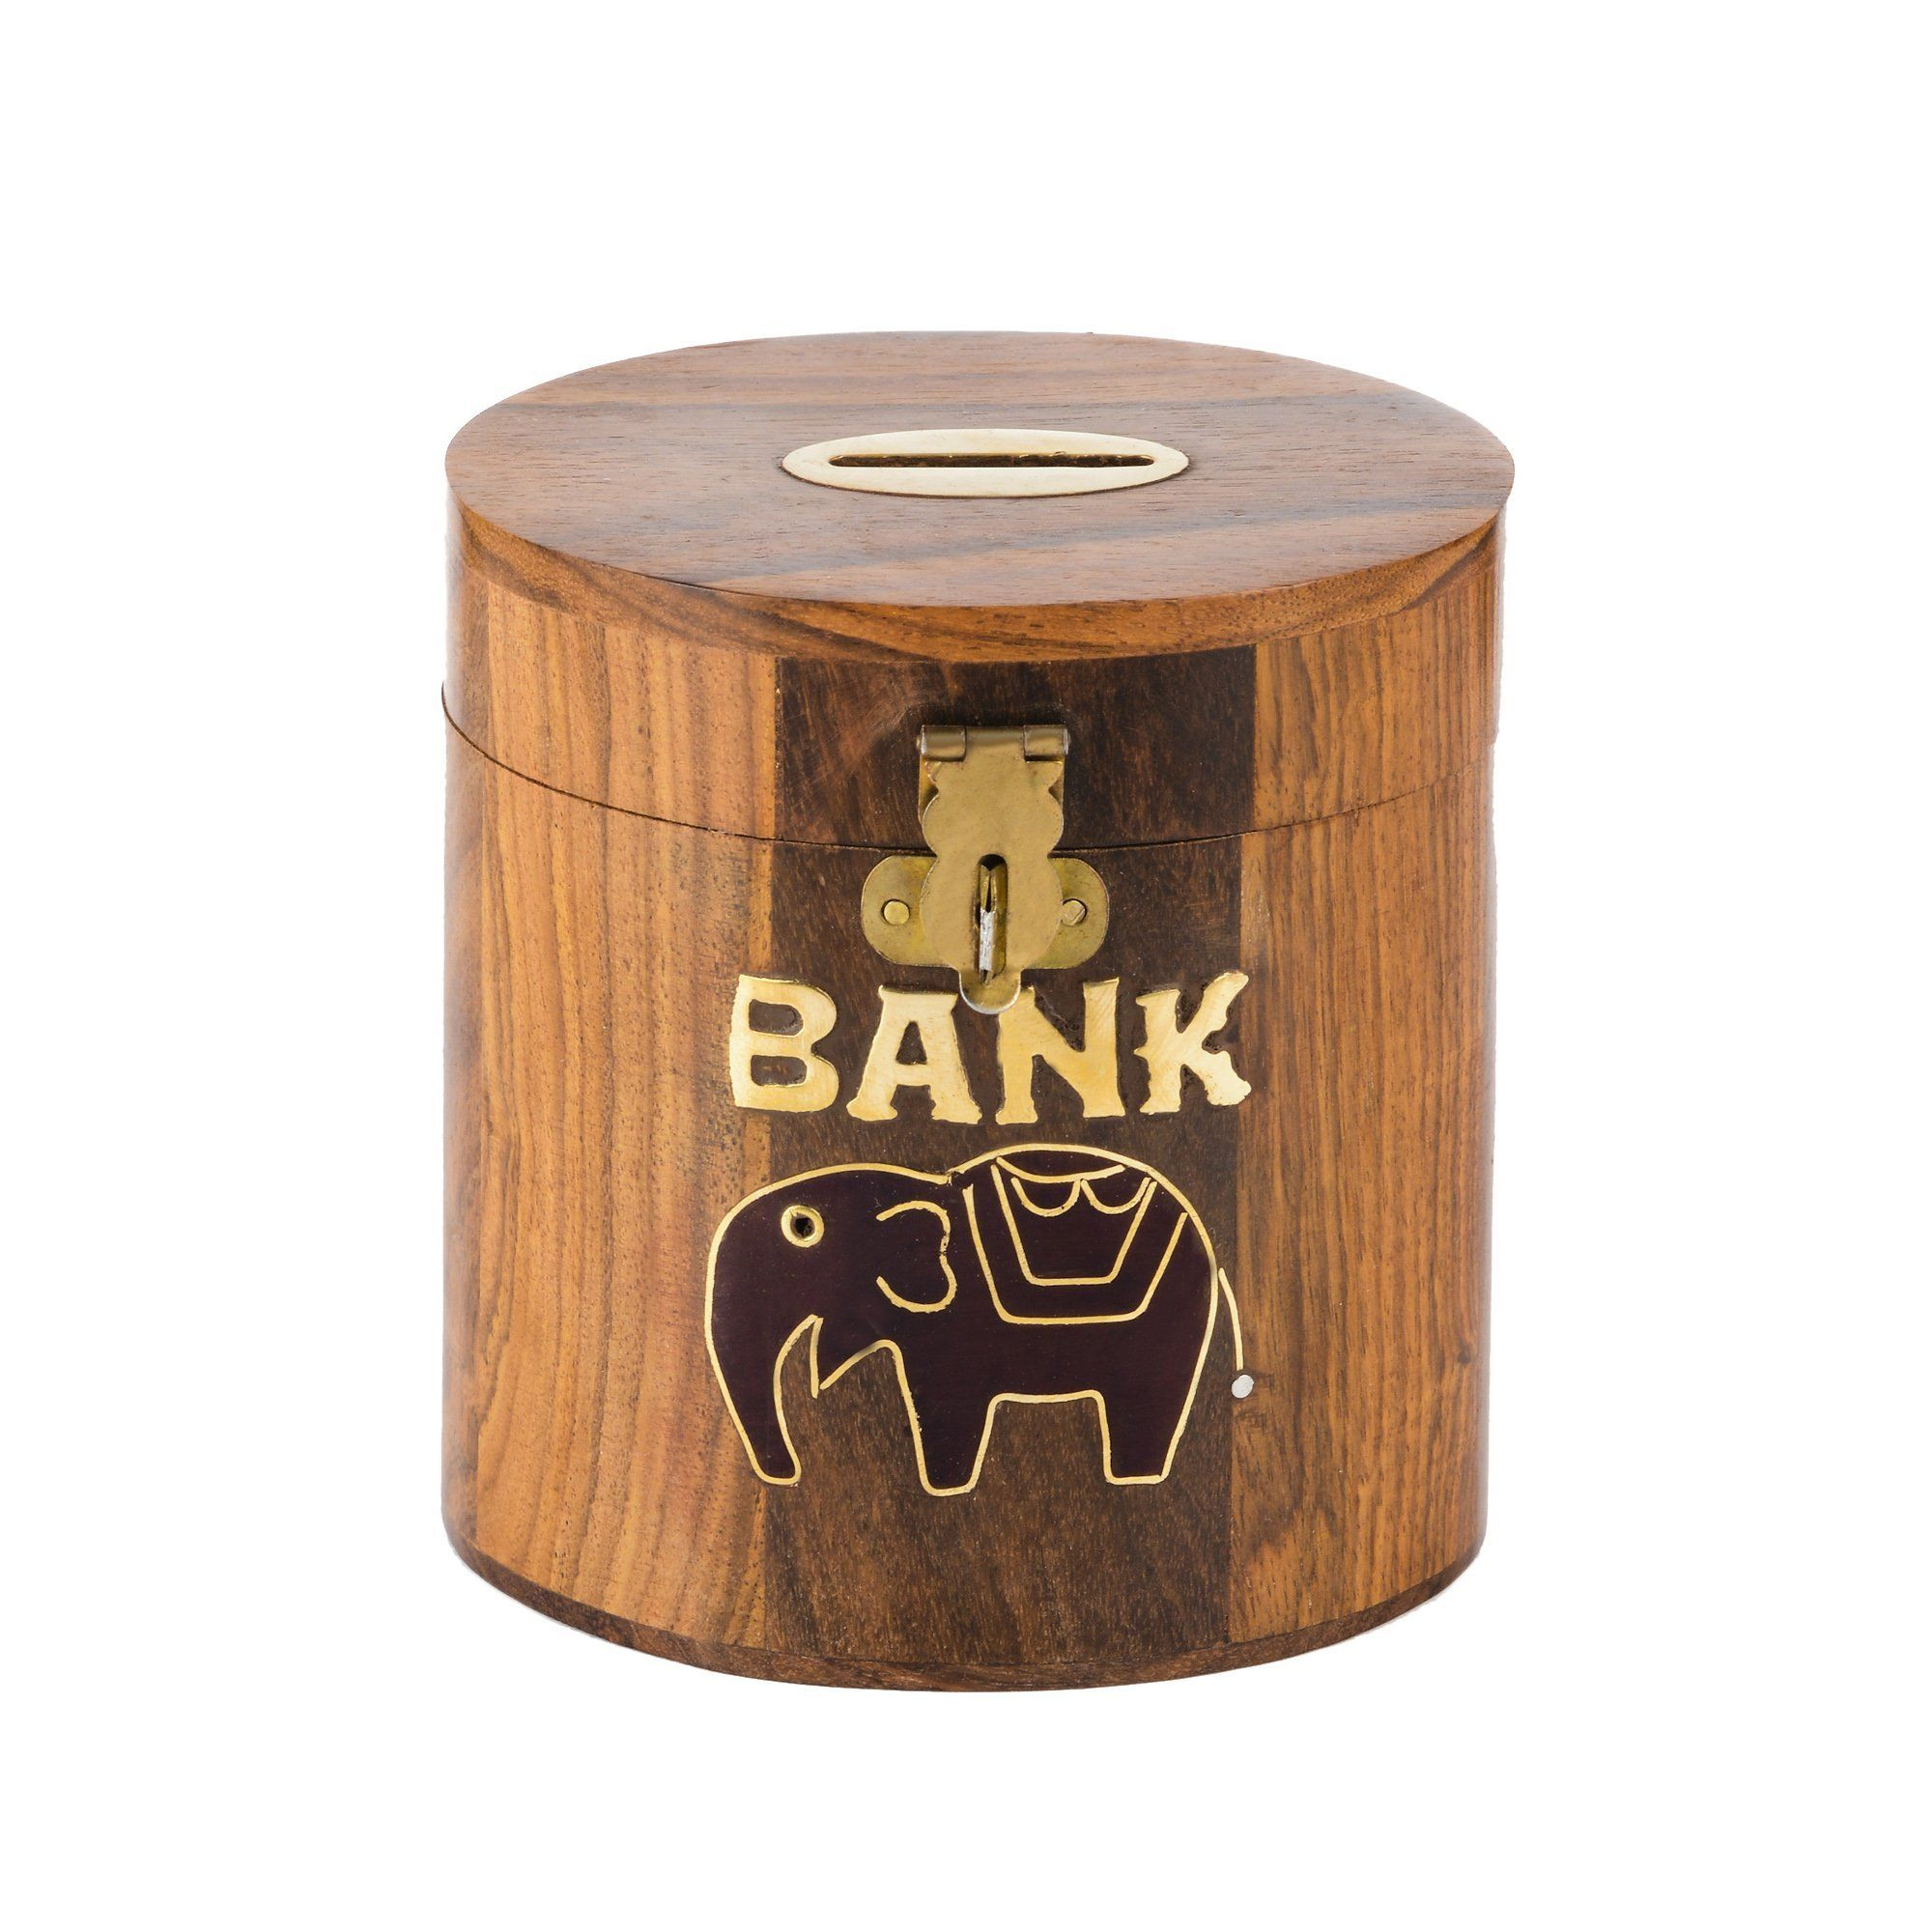 Rusticity Wood Piggy Bank For Kids And Adults Elephant Design Handmade 4x4 In Coin Bank With Lock And Wooden Money Wooden Money Boxes Piggy Bank Craft